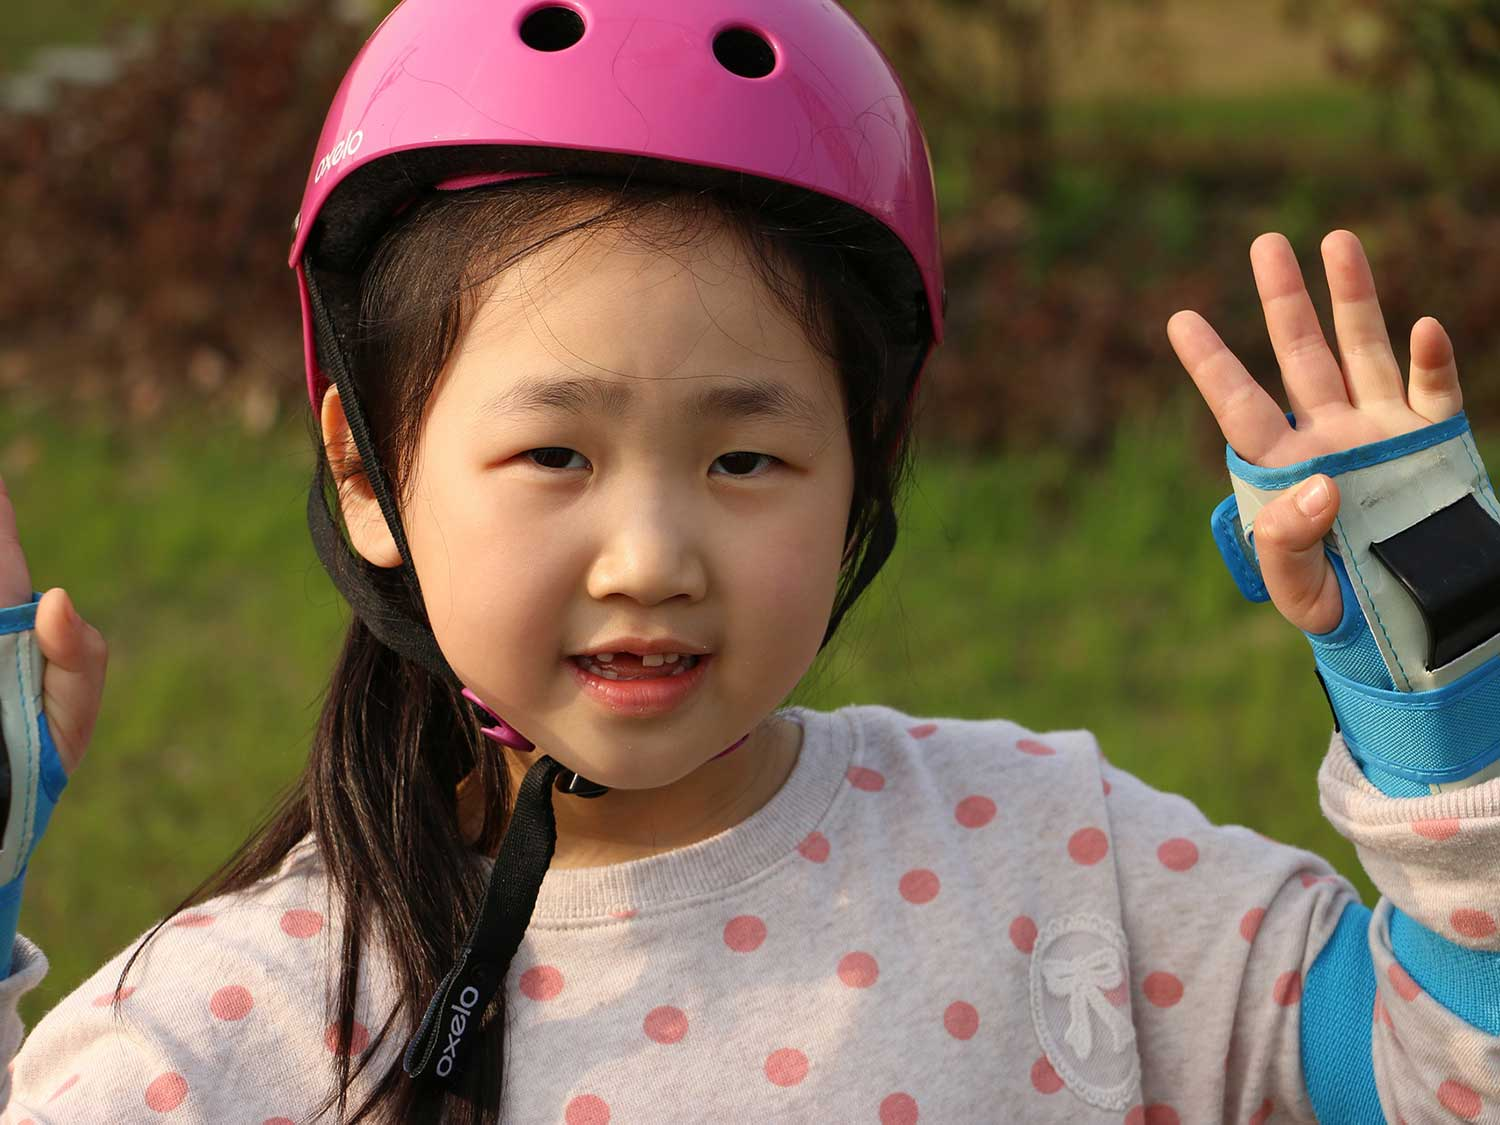 Girl with pads and helmet for roller skating